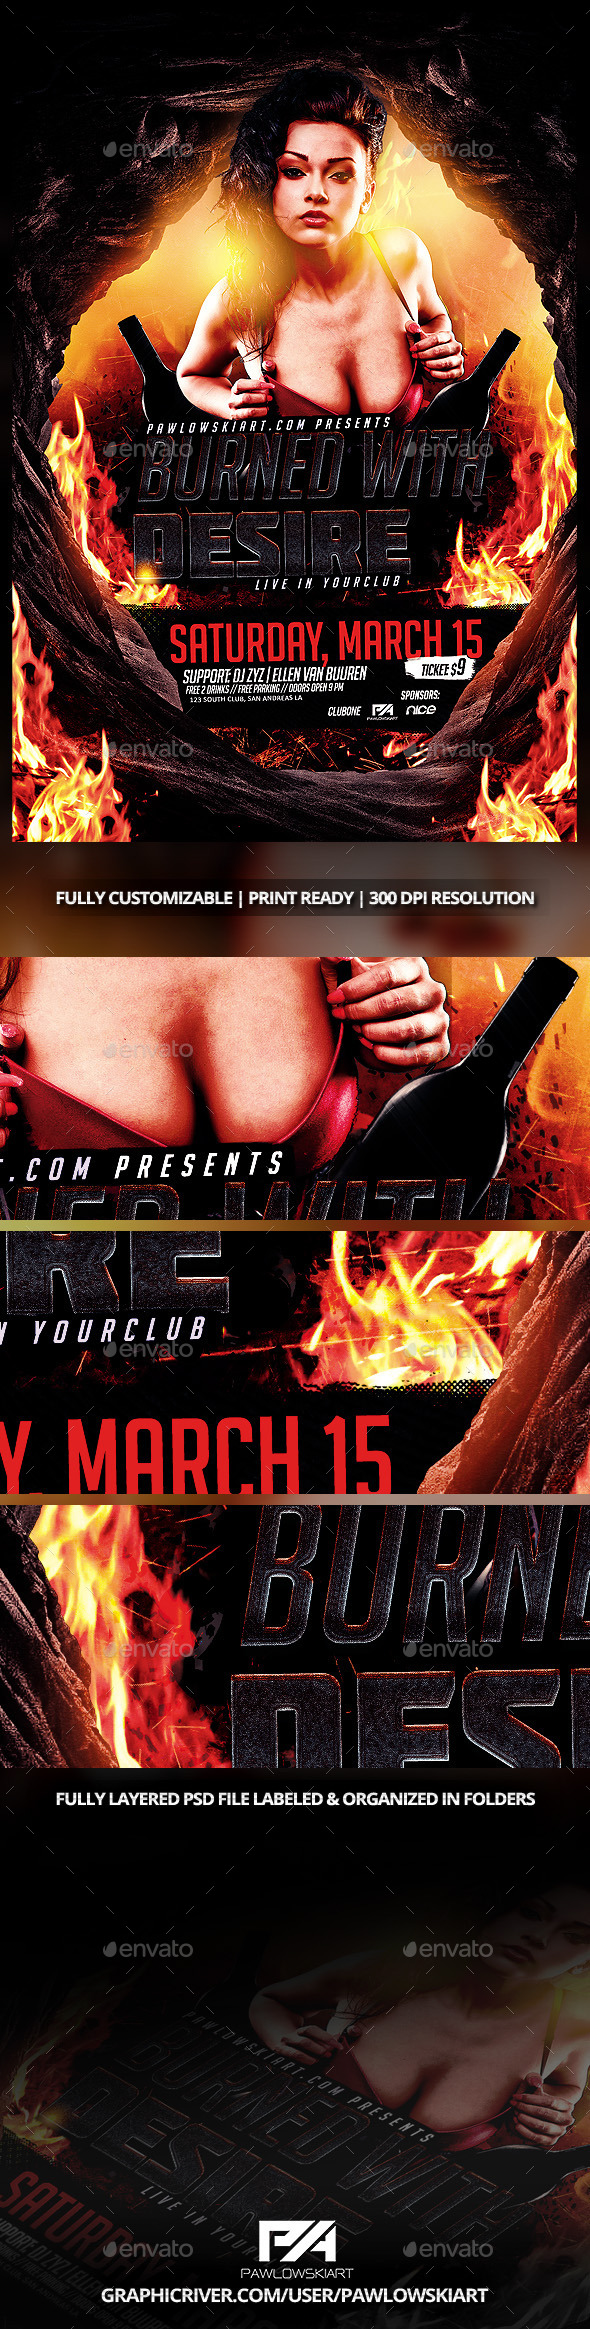 Burned With Desire Event Flyer Template PSD - Events Flyers